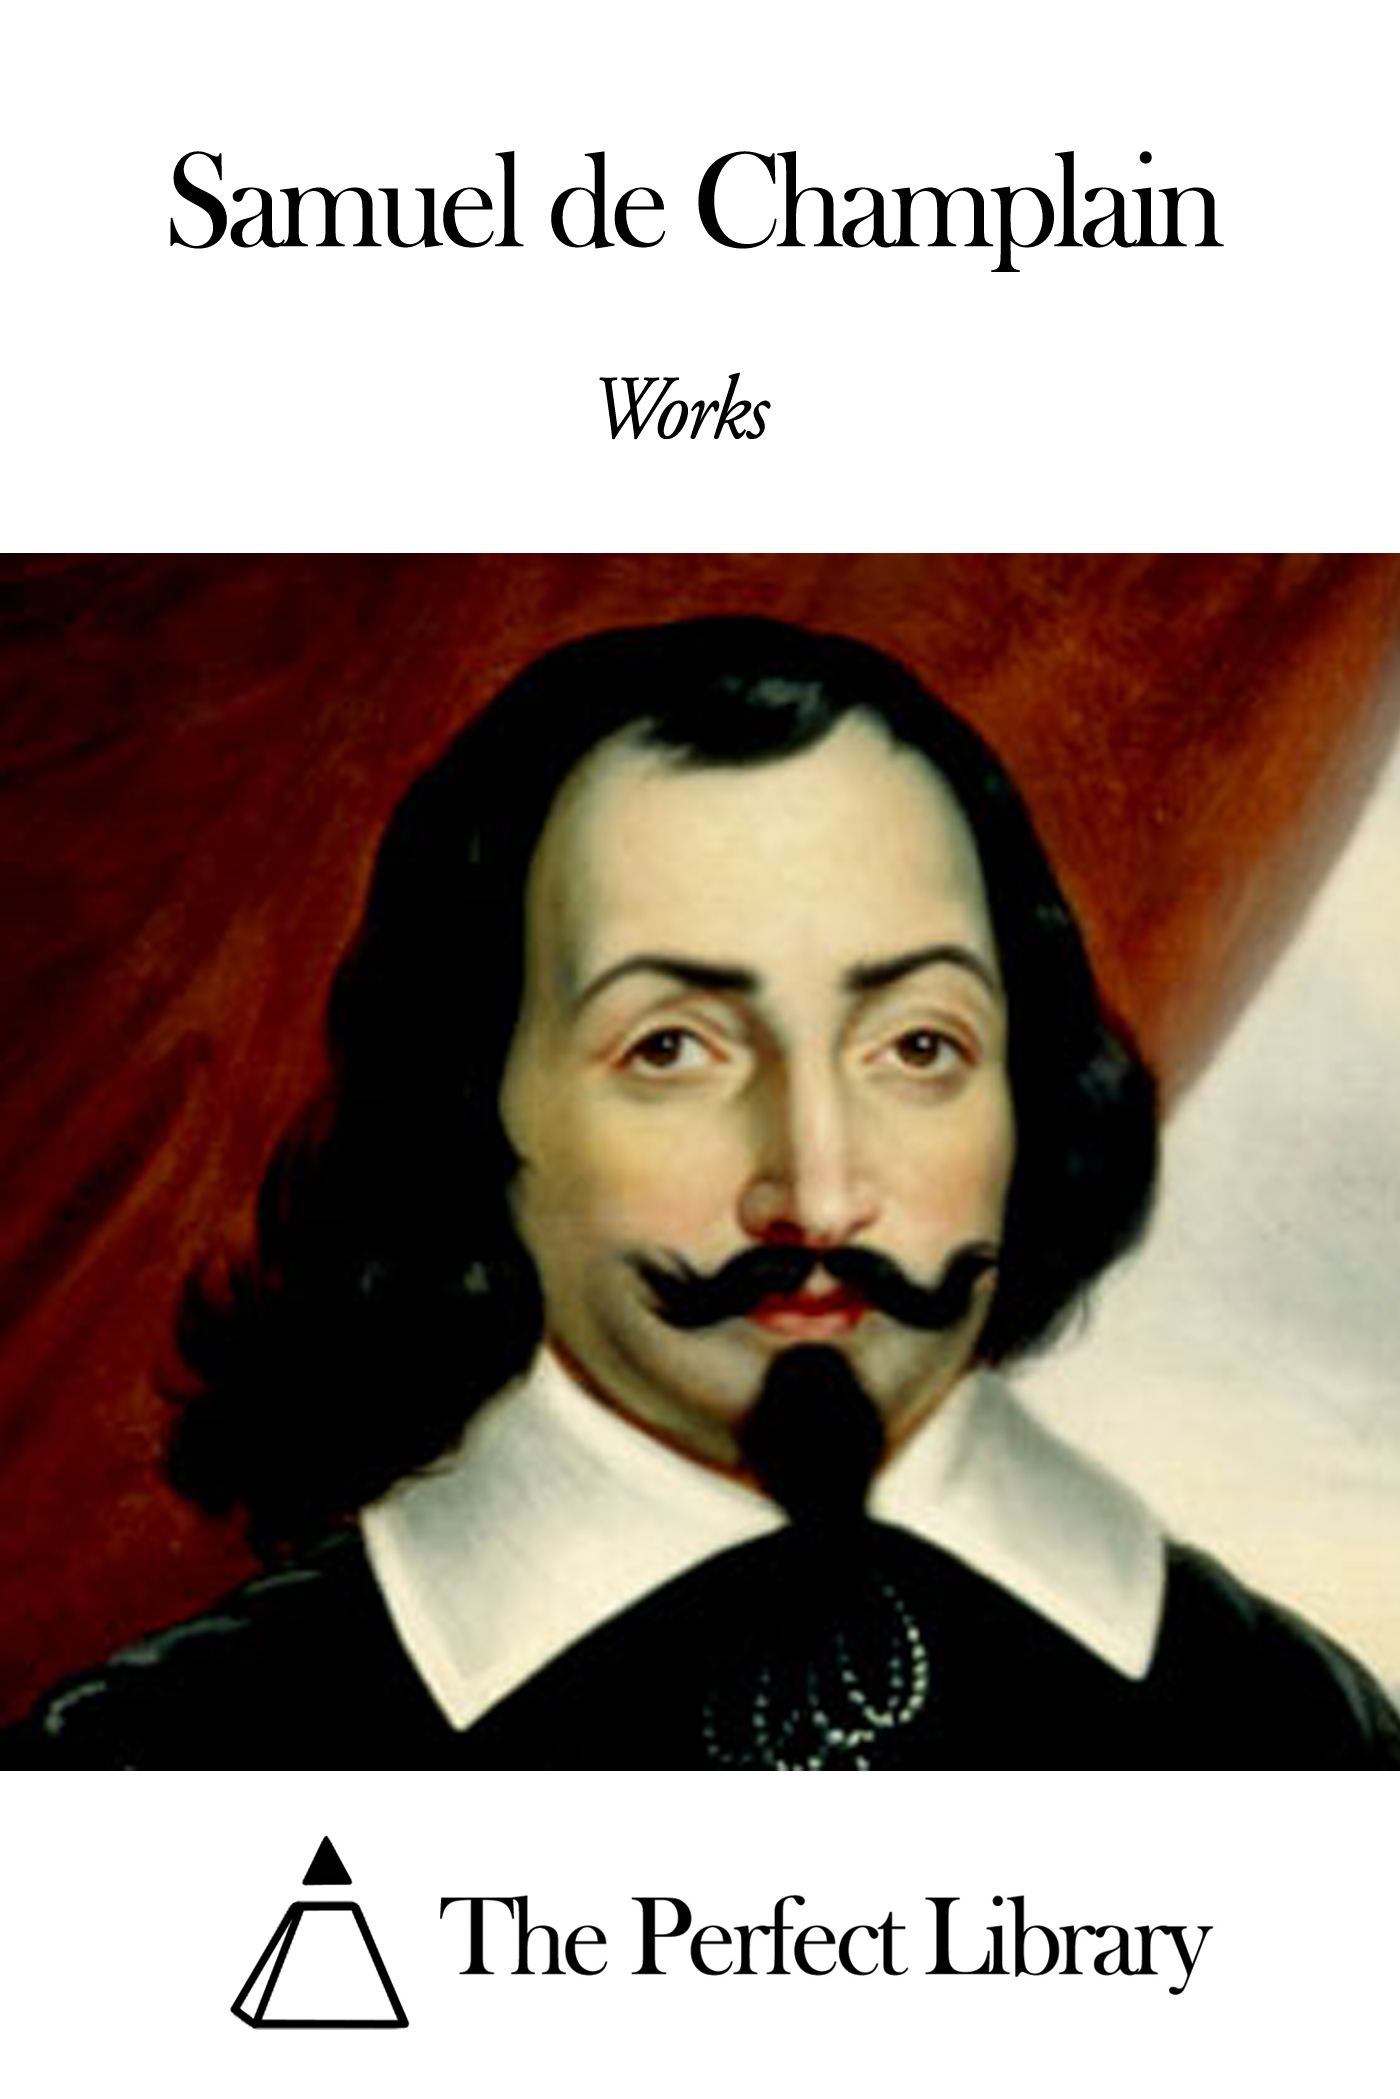 Works of Samuel de Champlain